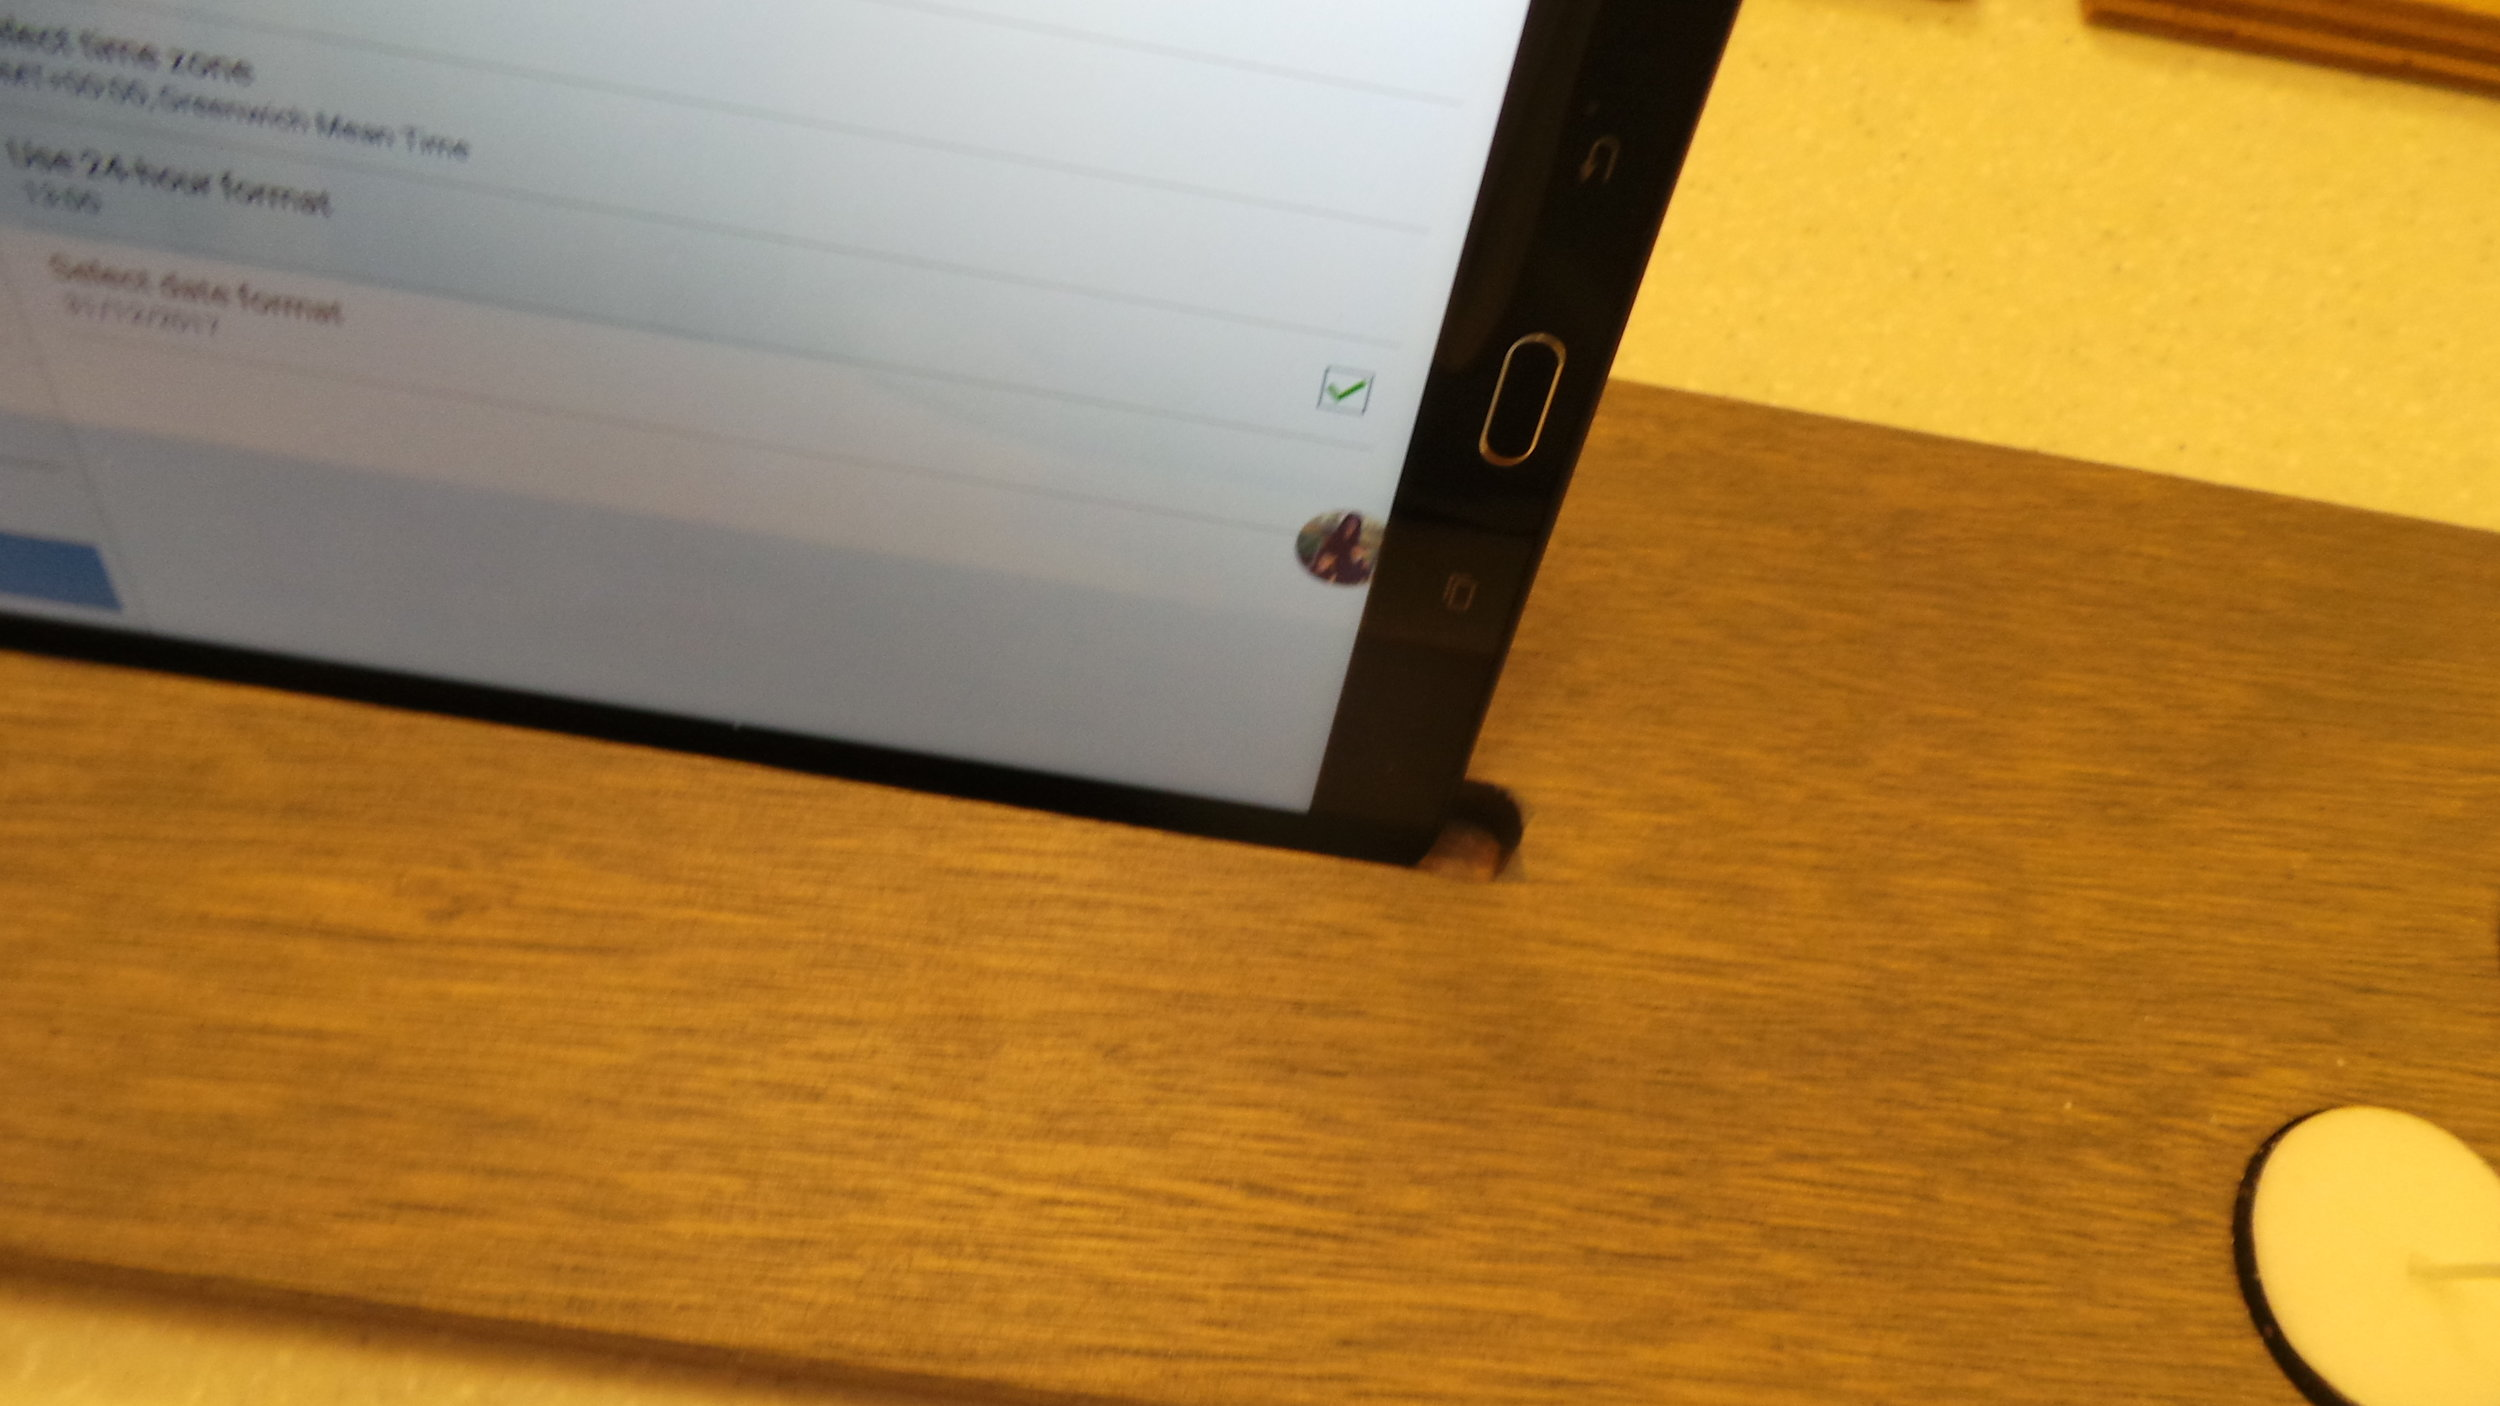 Slot for Tablet or Phone